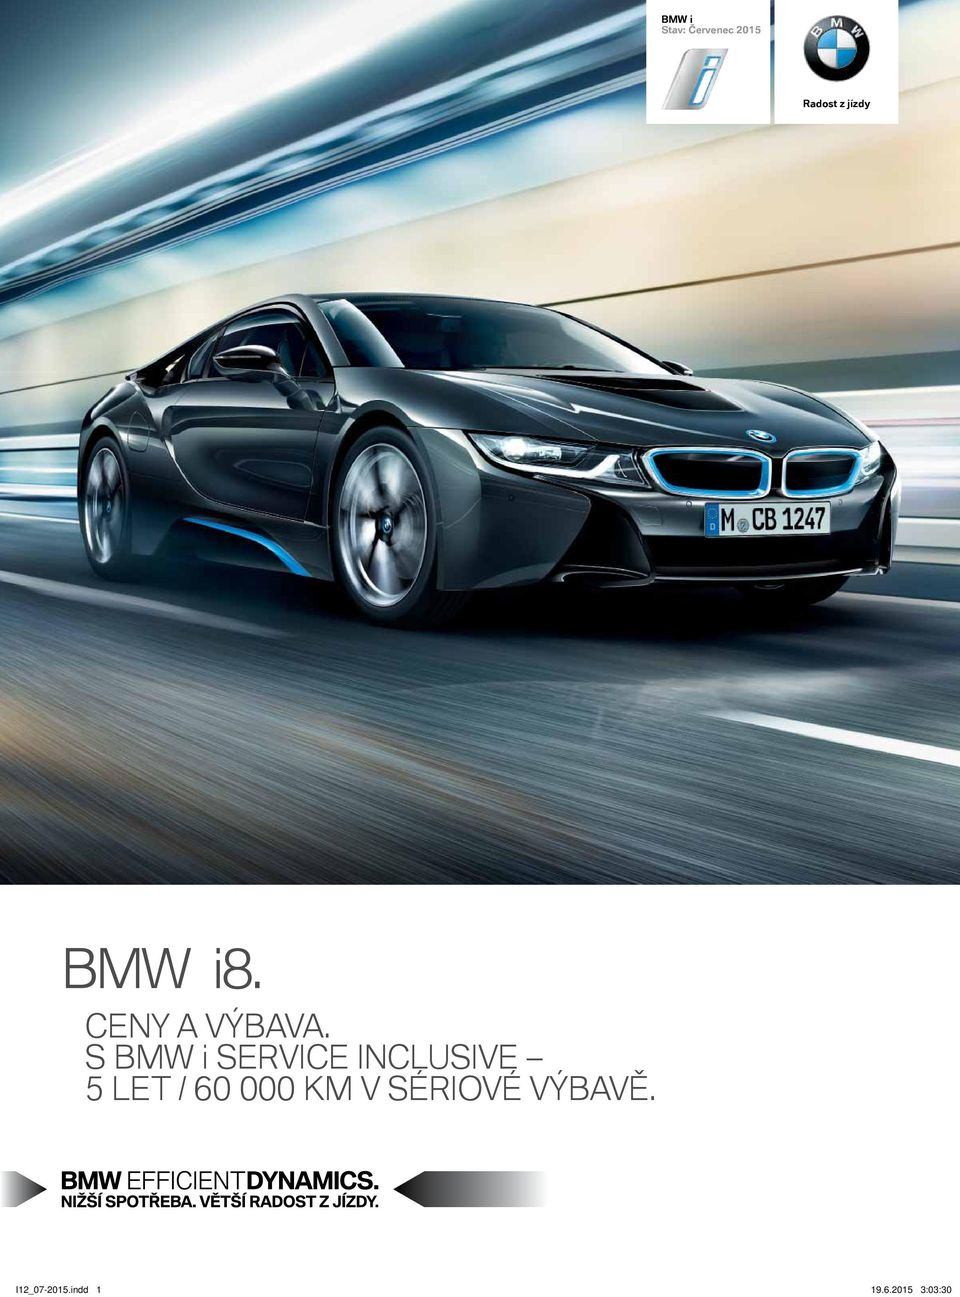 S BMW i SERVICE INCLUSIVE 5 LET / 60 000